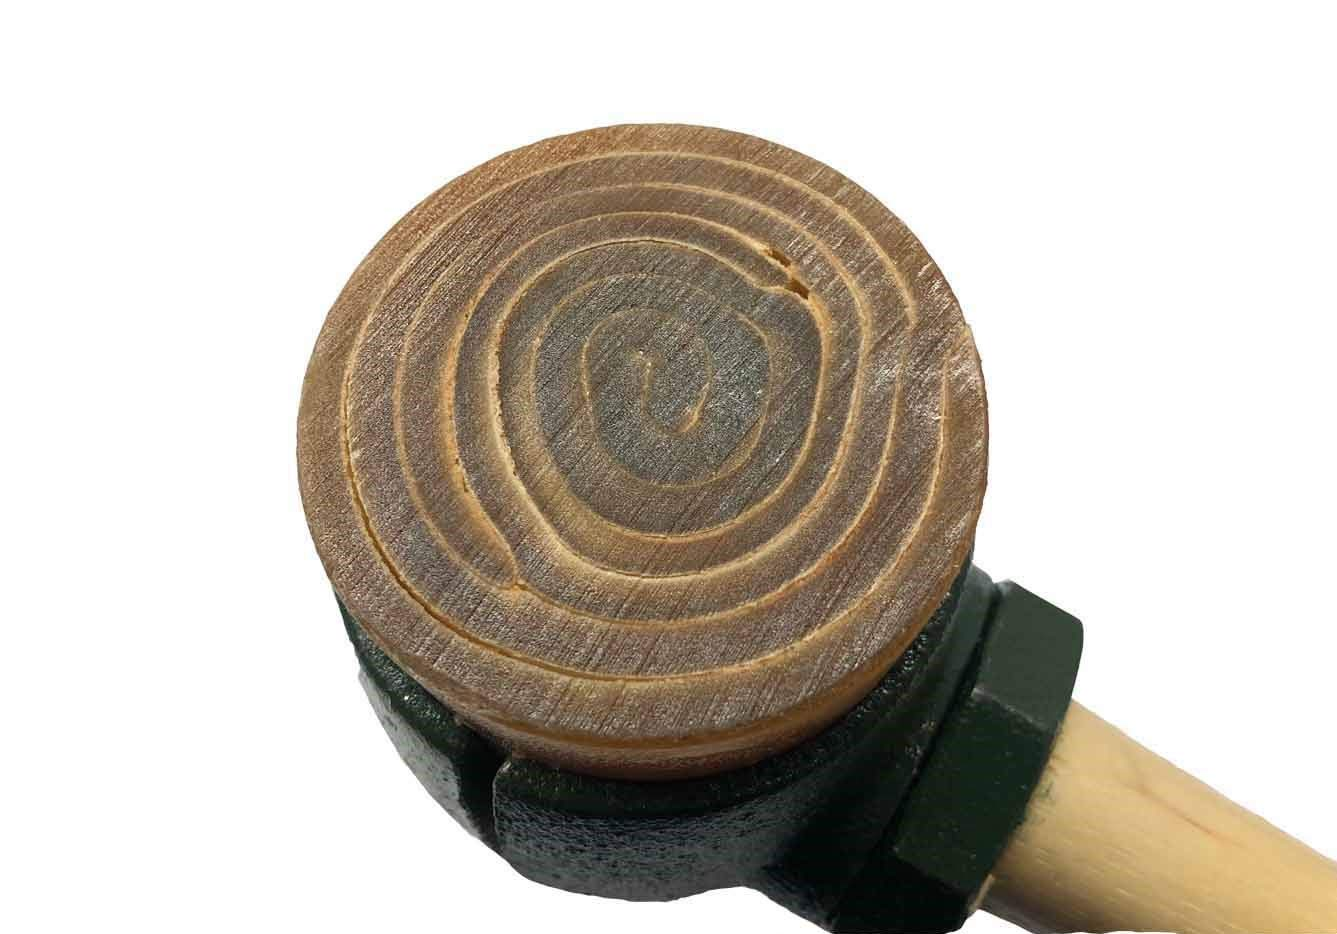 Rawhide Mallet Split Head Hammer #5 GARLAND 31005 with 2-3/4'' Rawhide Faces by Garland (Image #2)